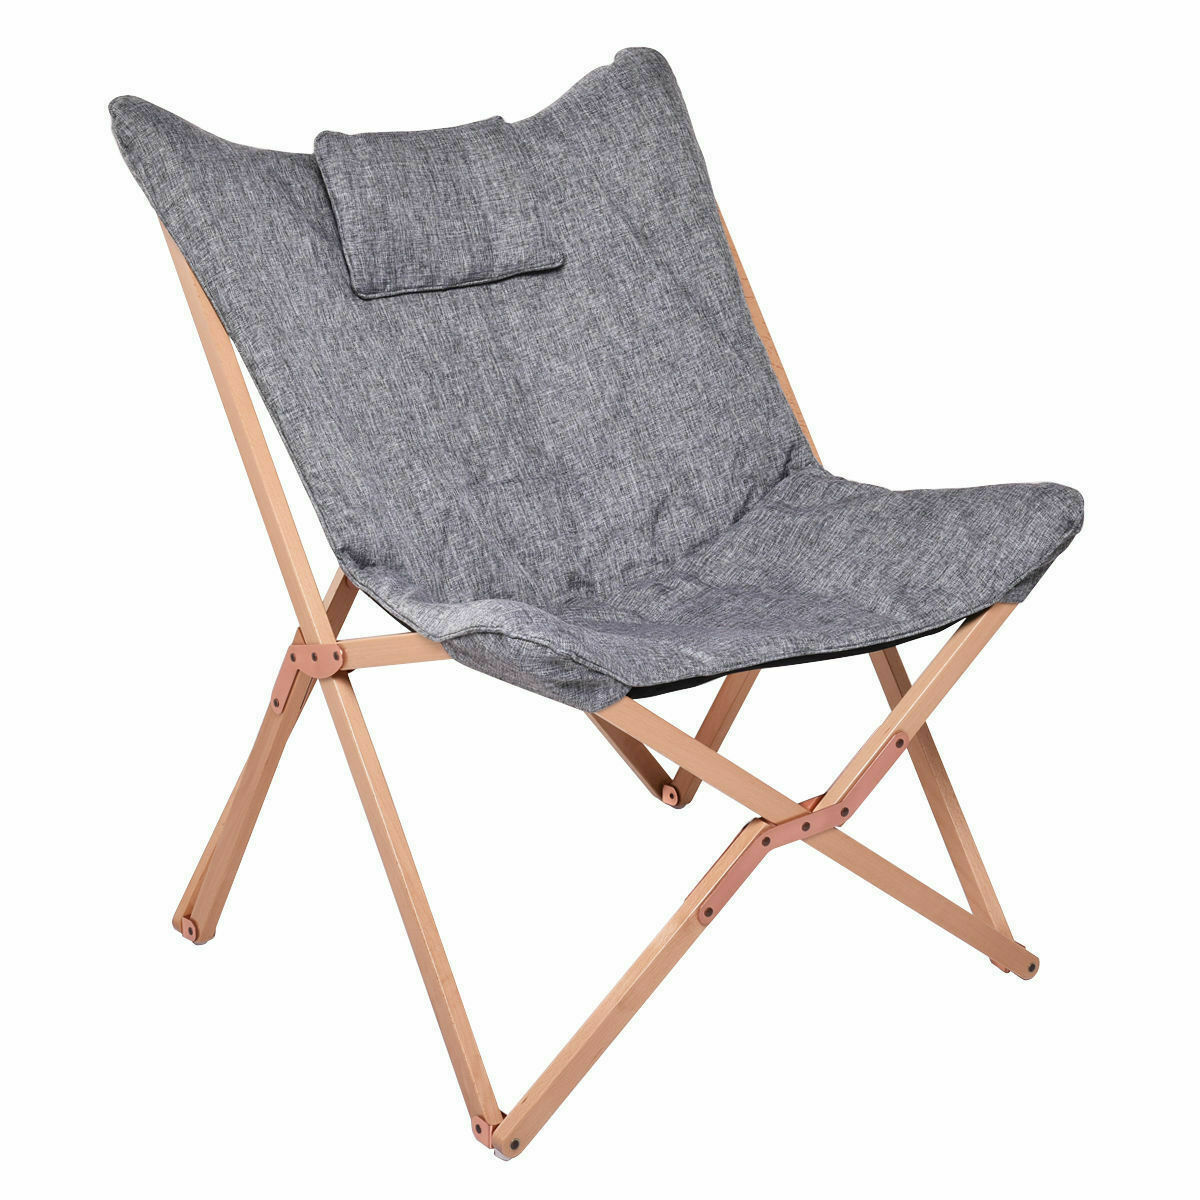 REMSOFT® Butterfly Chair Camping Folding Chair Outdoor Indoor Furniture Wood Fra